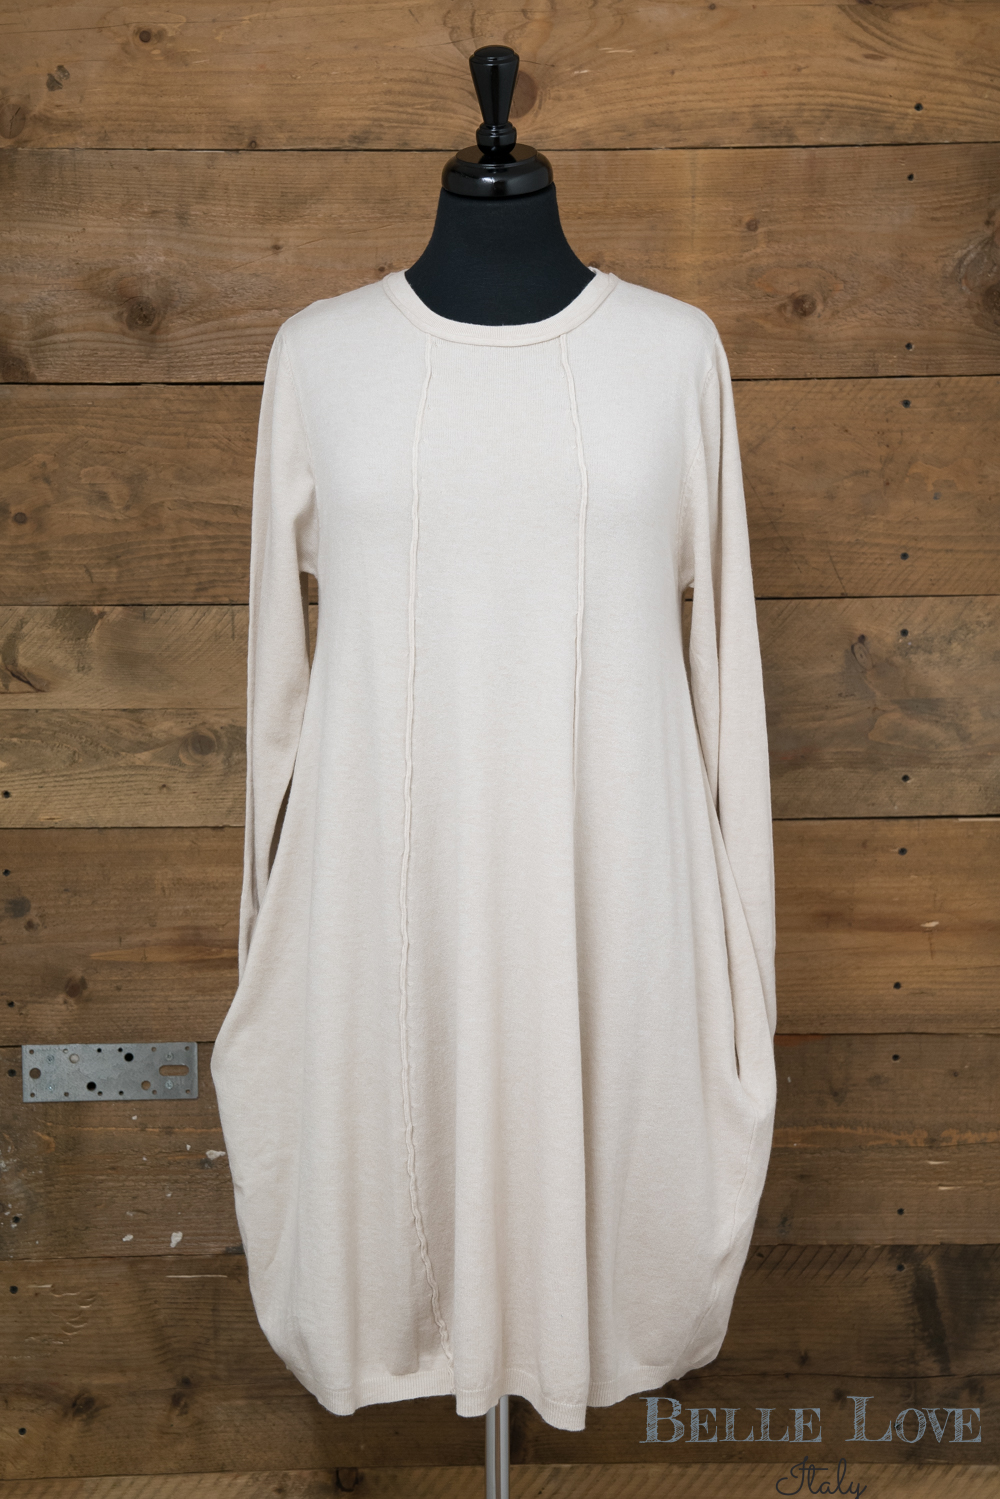 Belle Love Italy Cashmere Mix Dress